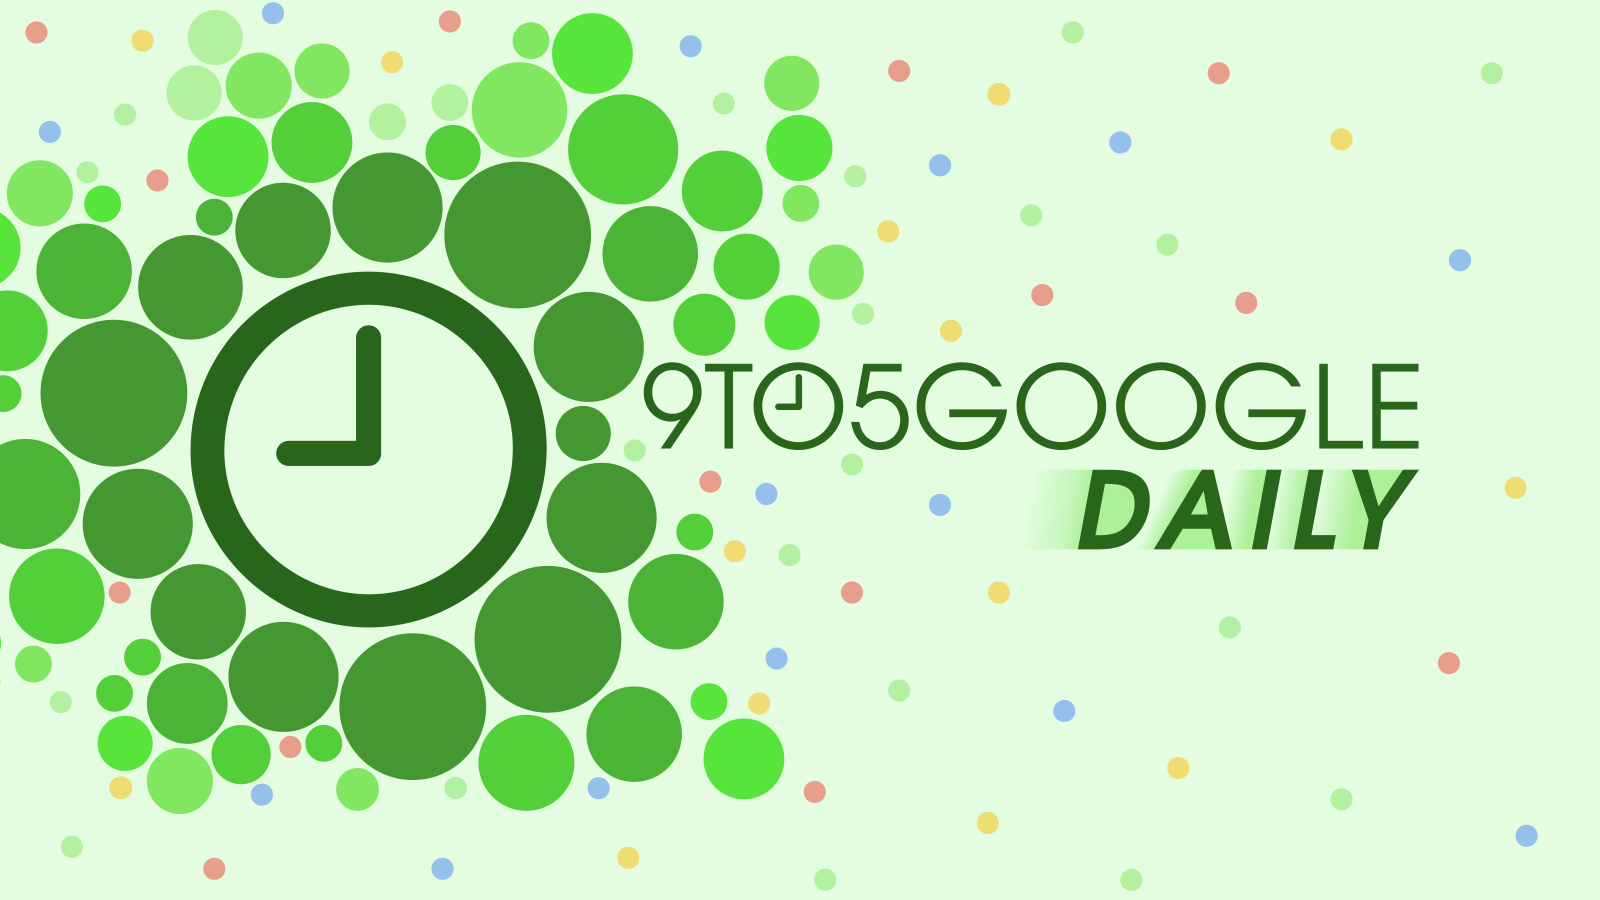 9to5Google Daily 372: Android's answer to AirDrop gets a new name and Android Auto surpasses 100 million downloads